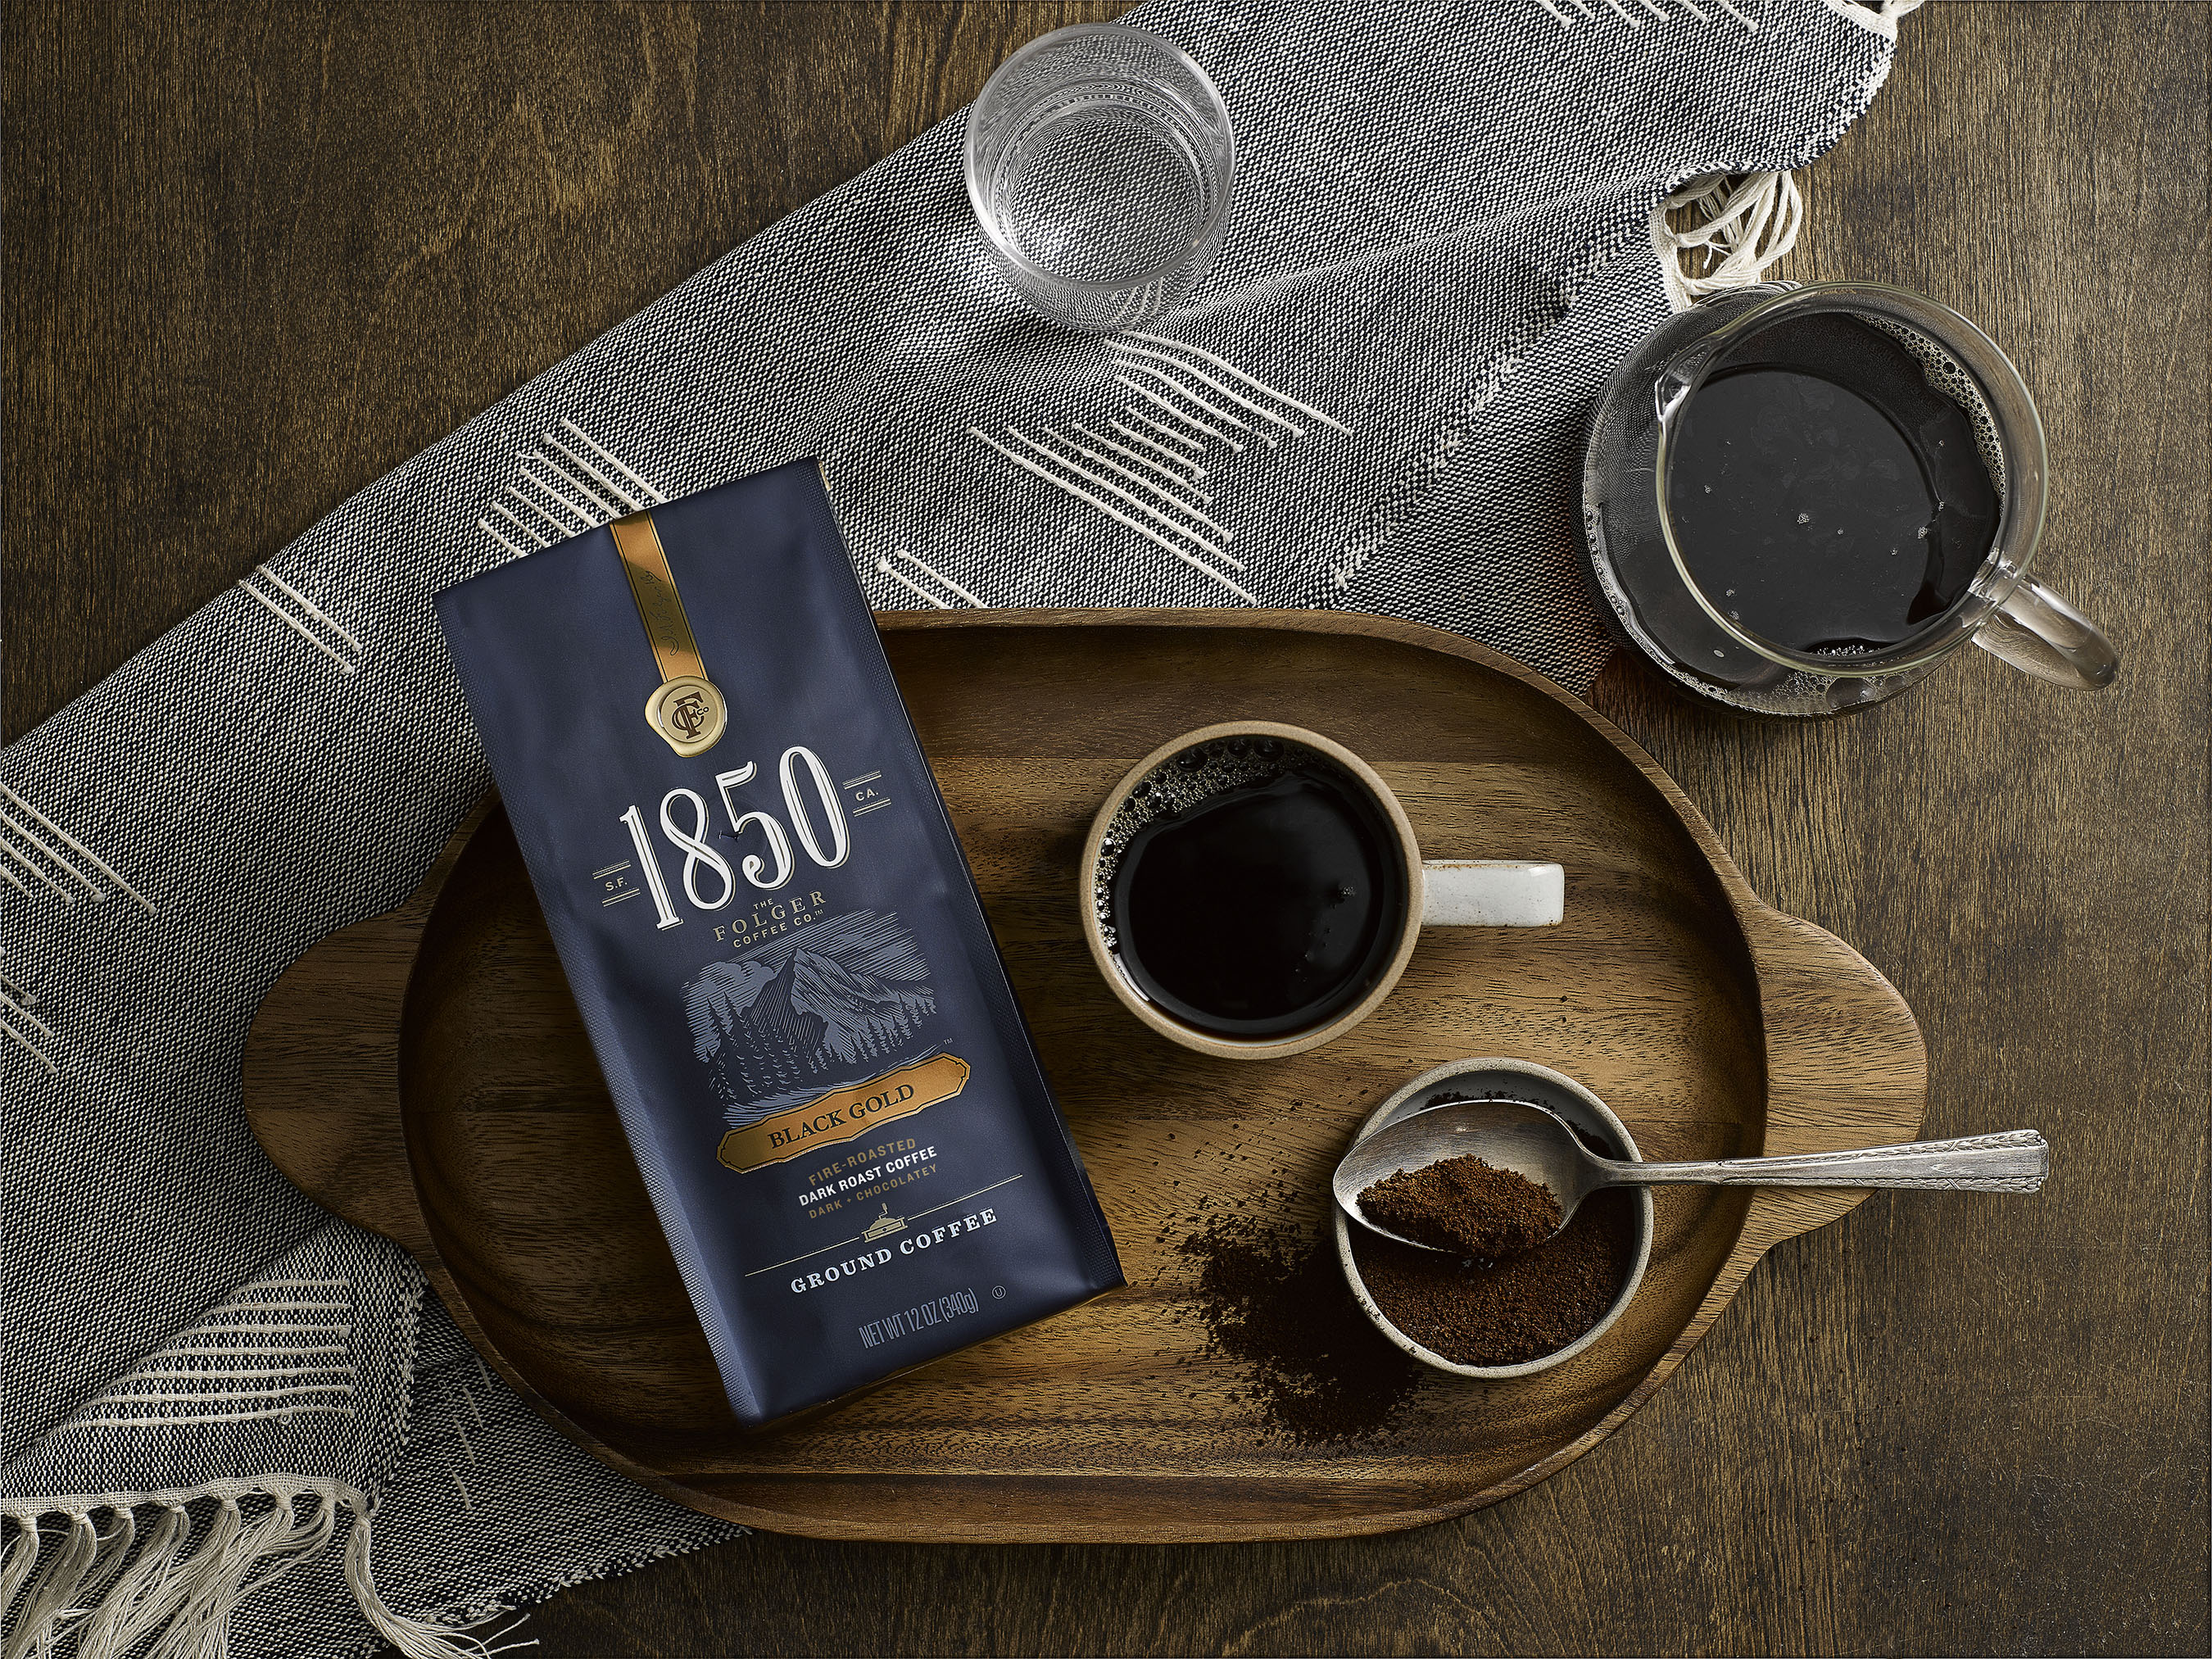 1850™ Brand Coffee Bold Pioneer Contest